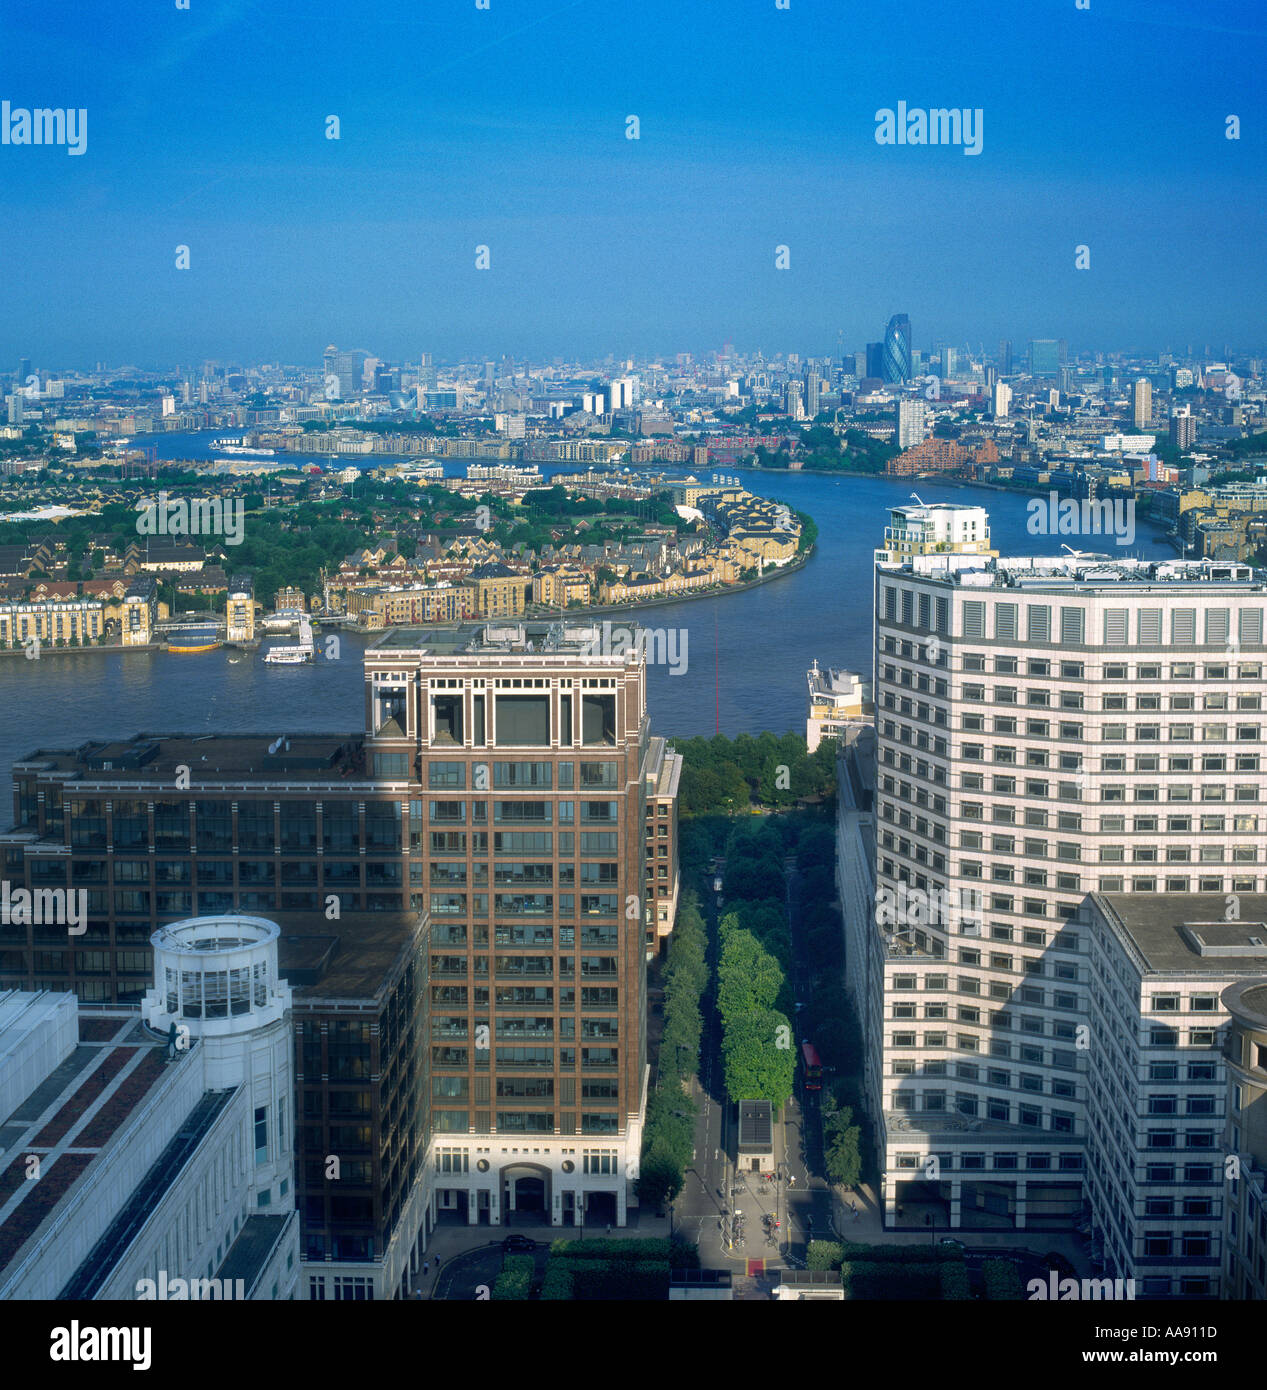 View from Canary Wharf looking West across River Thames towards Canada Water, Rotherhithe and City of London Stock Photo